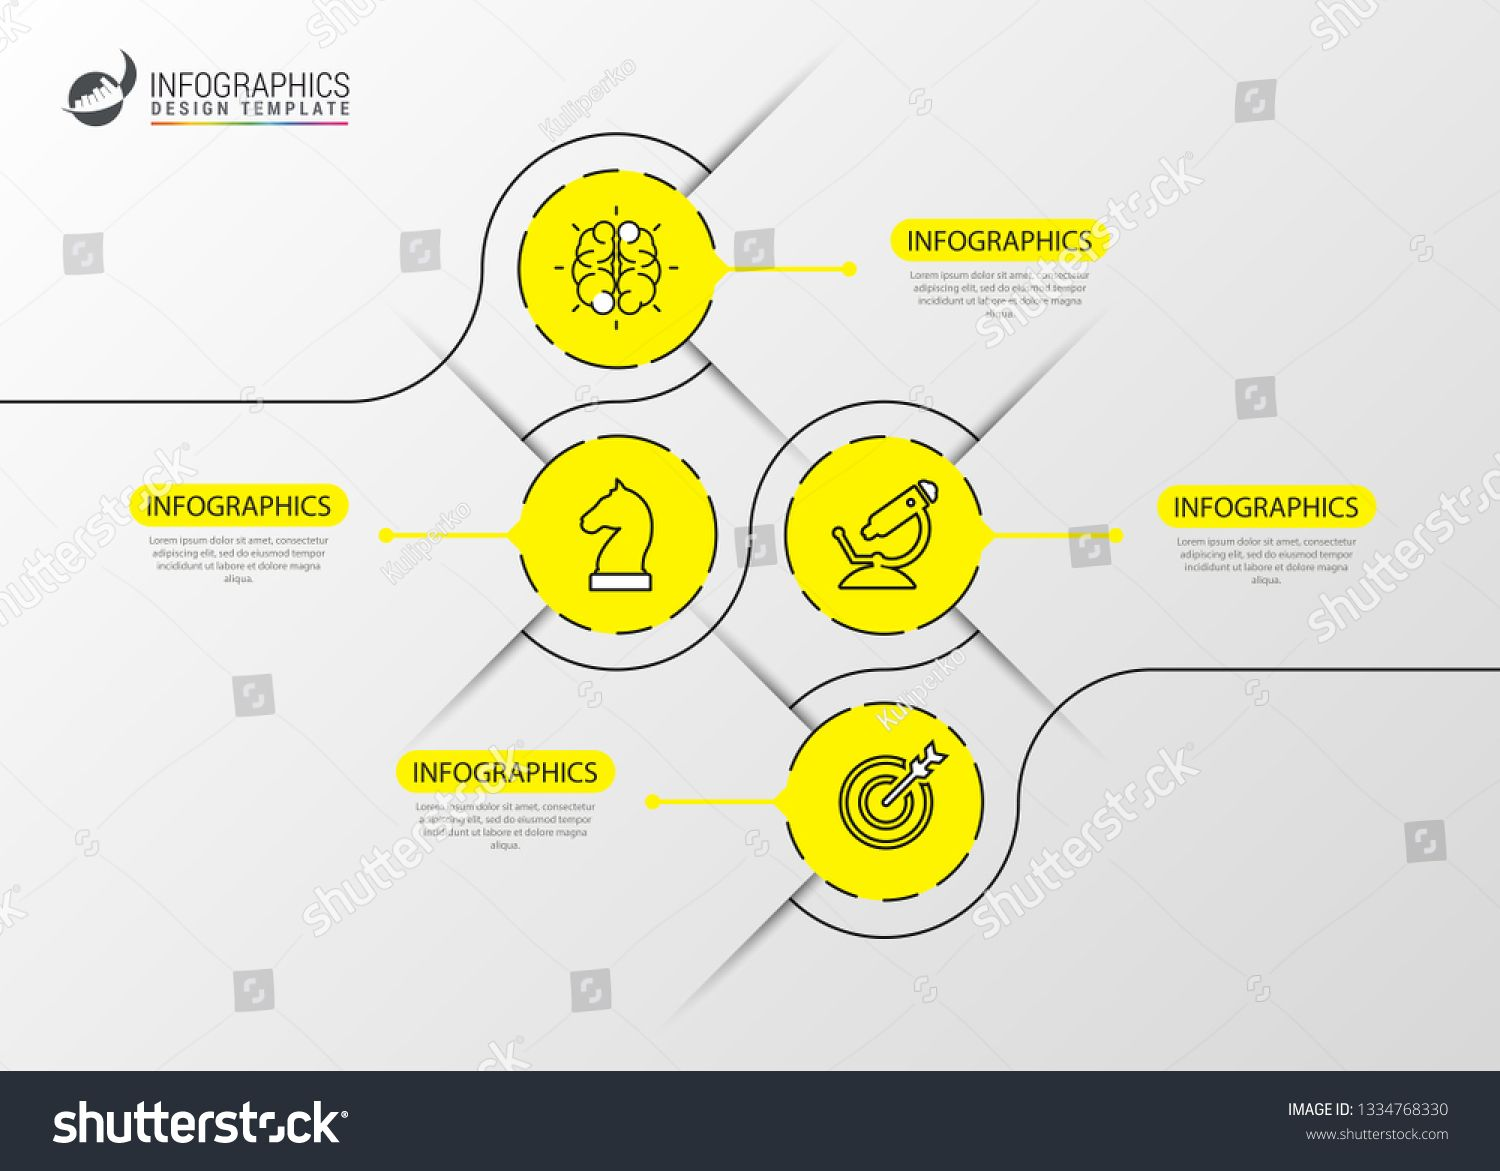 Infographic Design Template Timeline Concept With 4 Steps Can Be Used For Workflow Layout Dia Infographic Design Template Infographic Design Design Template